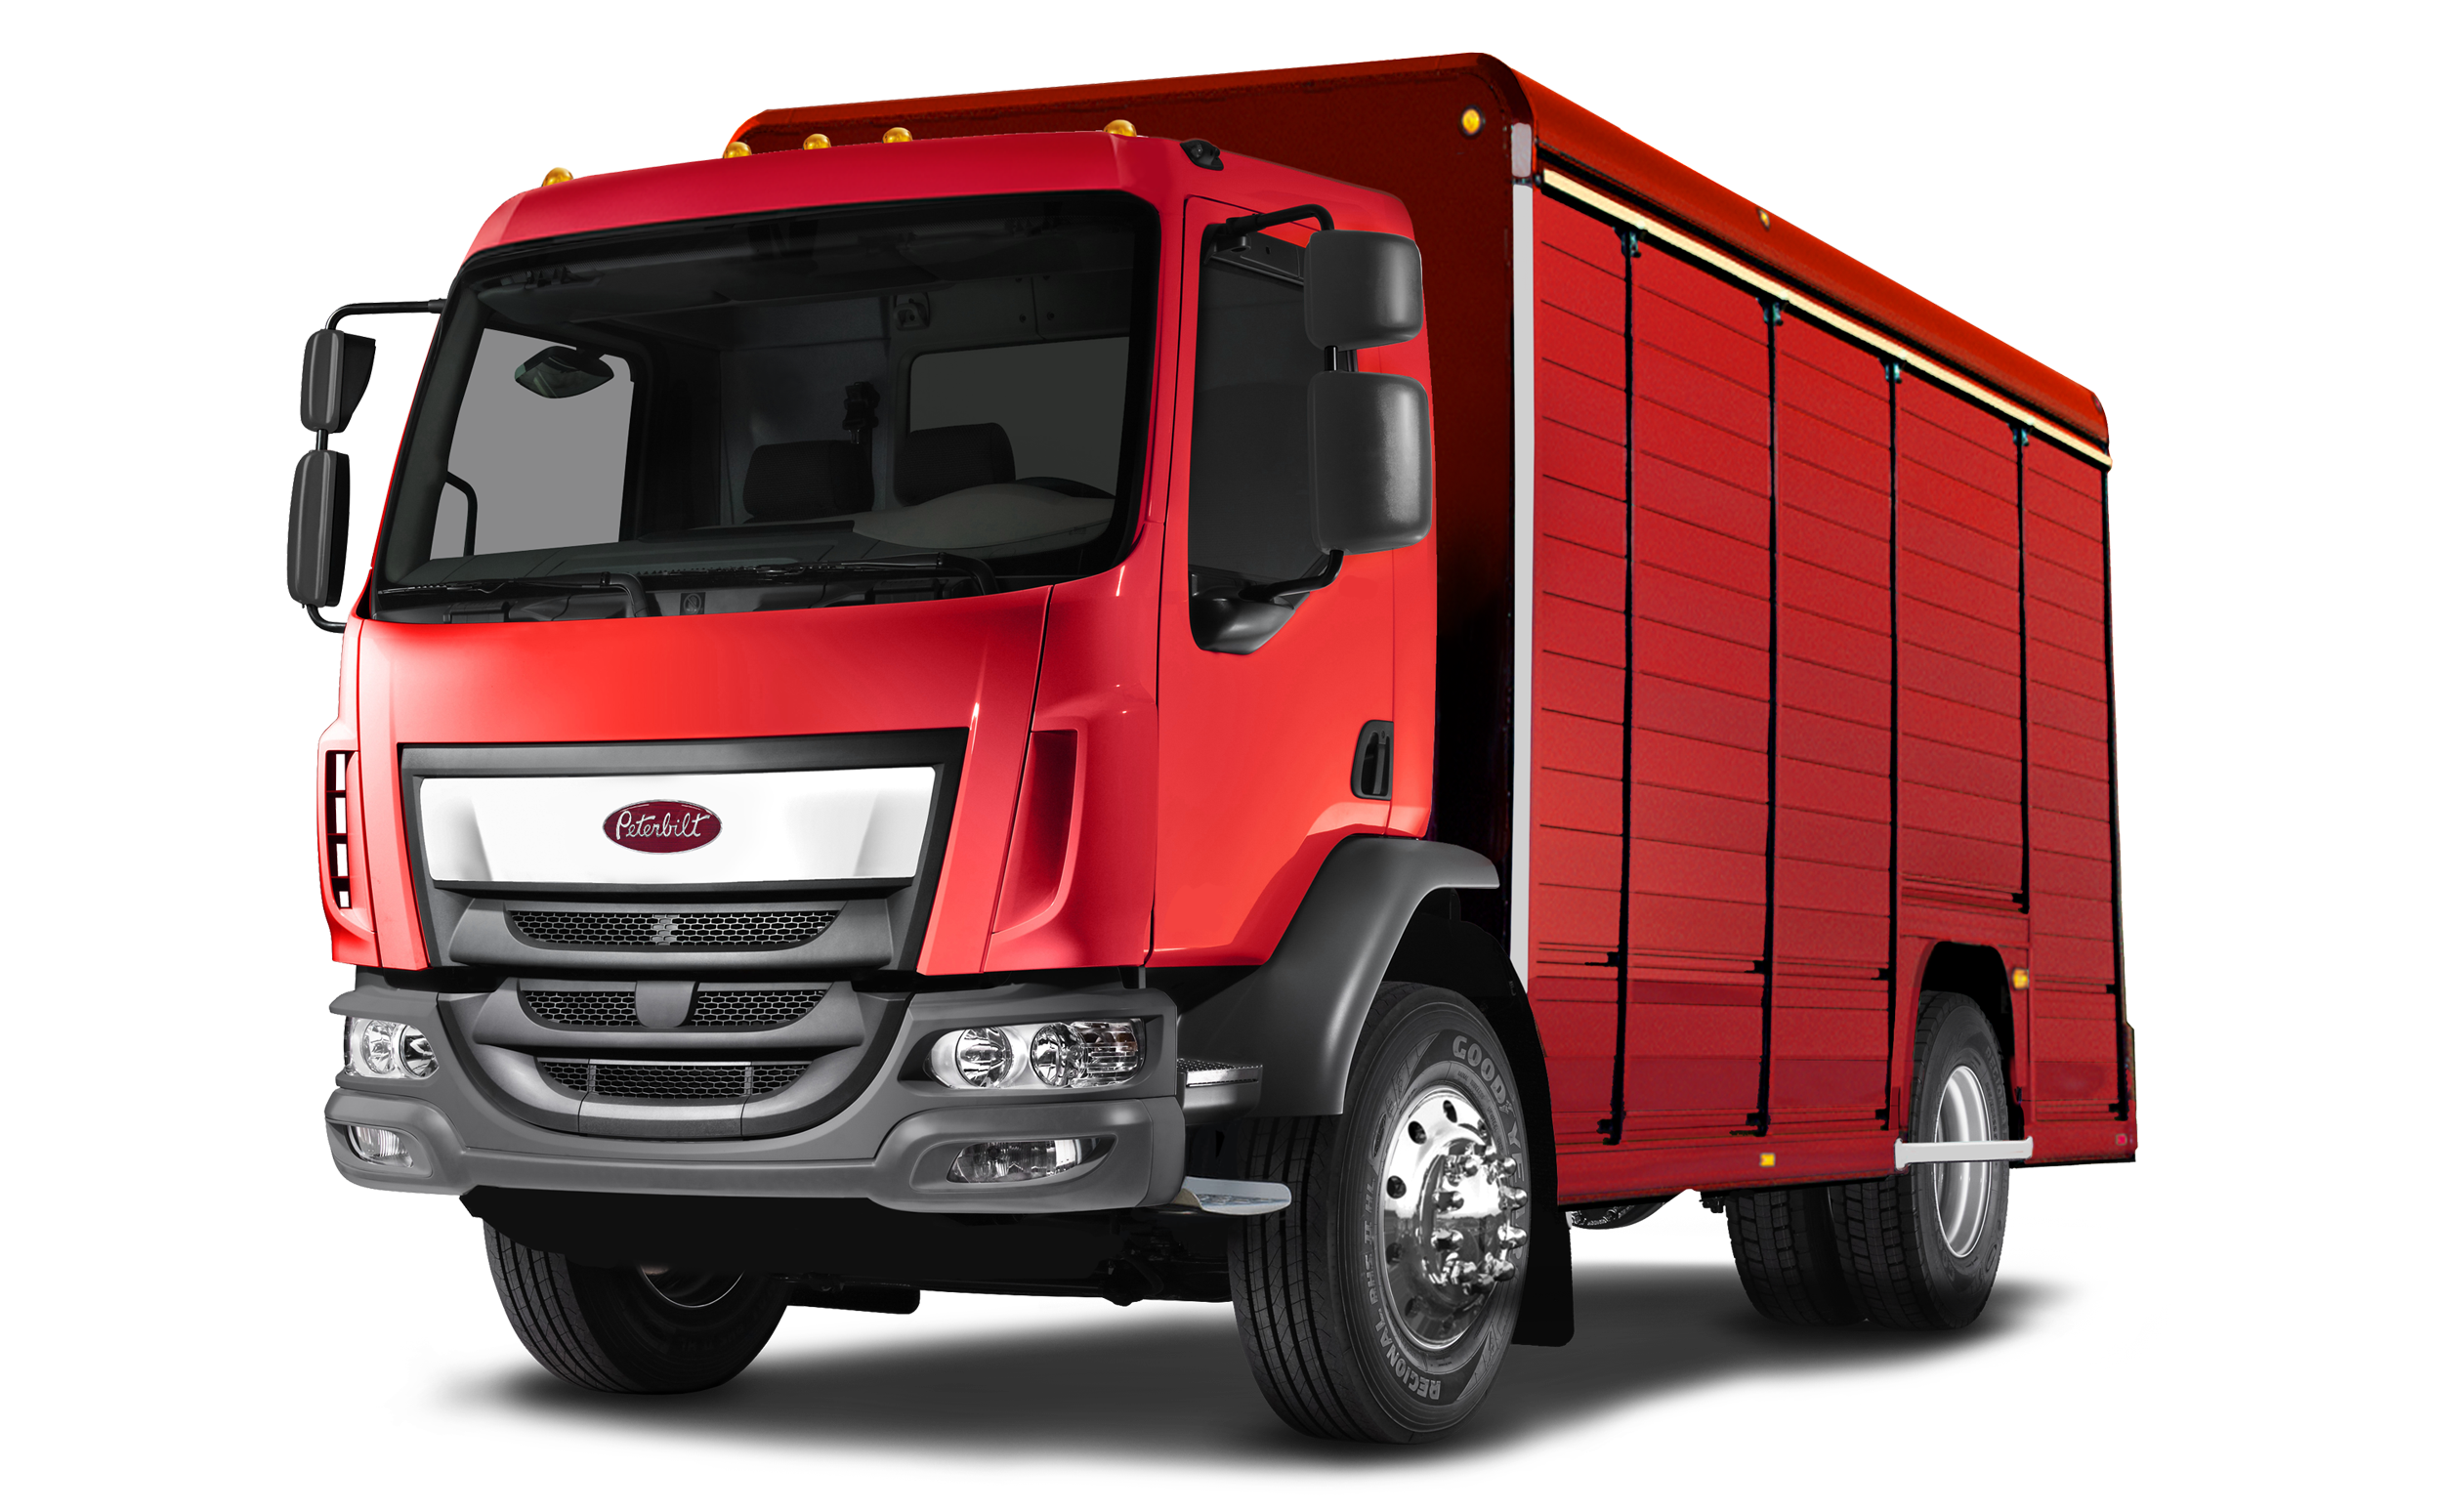 Paccar issues three recalls affecting more than 100,000